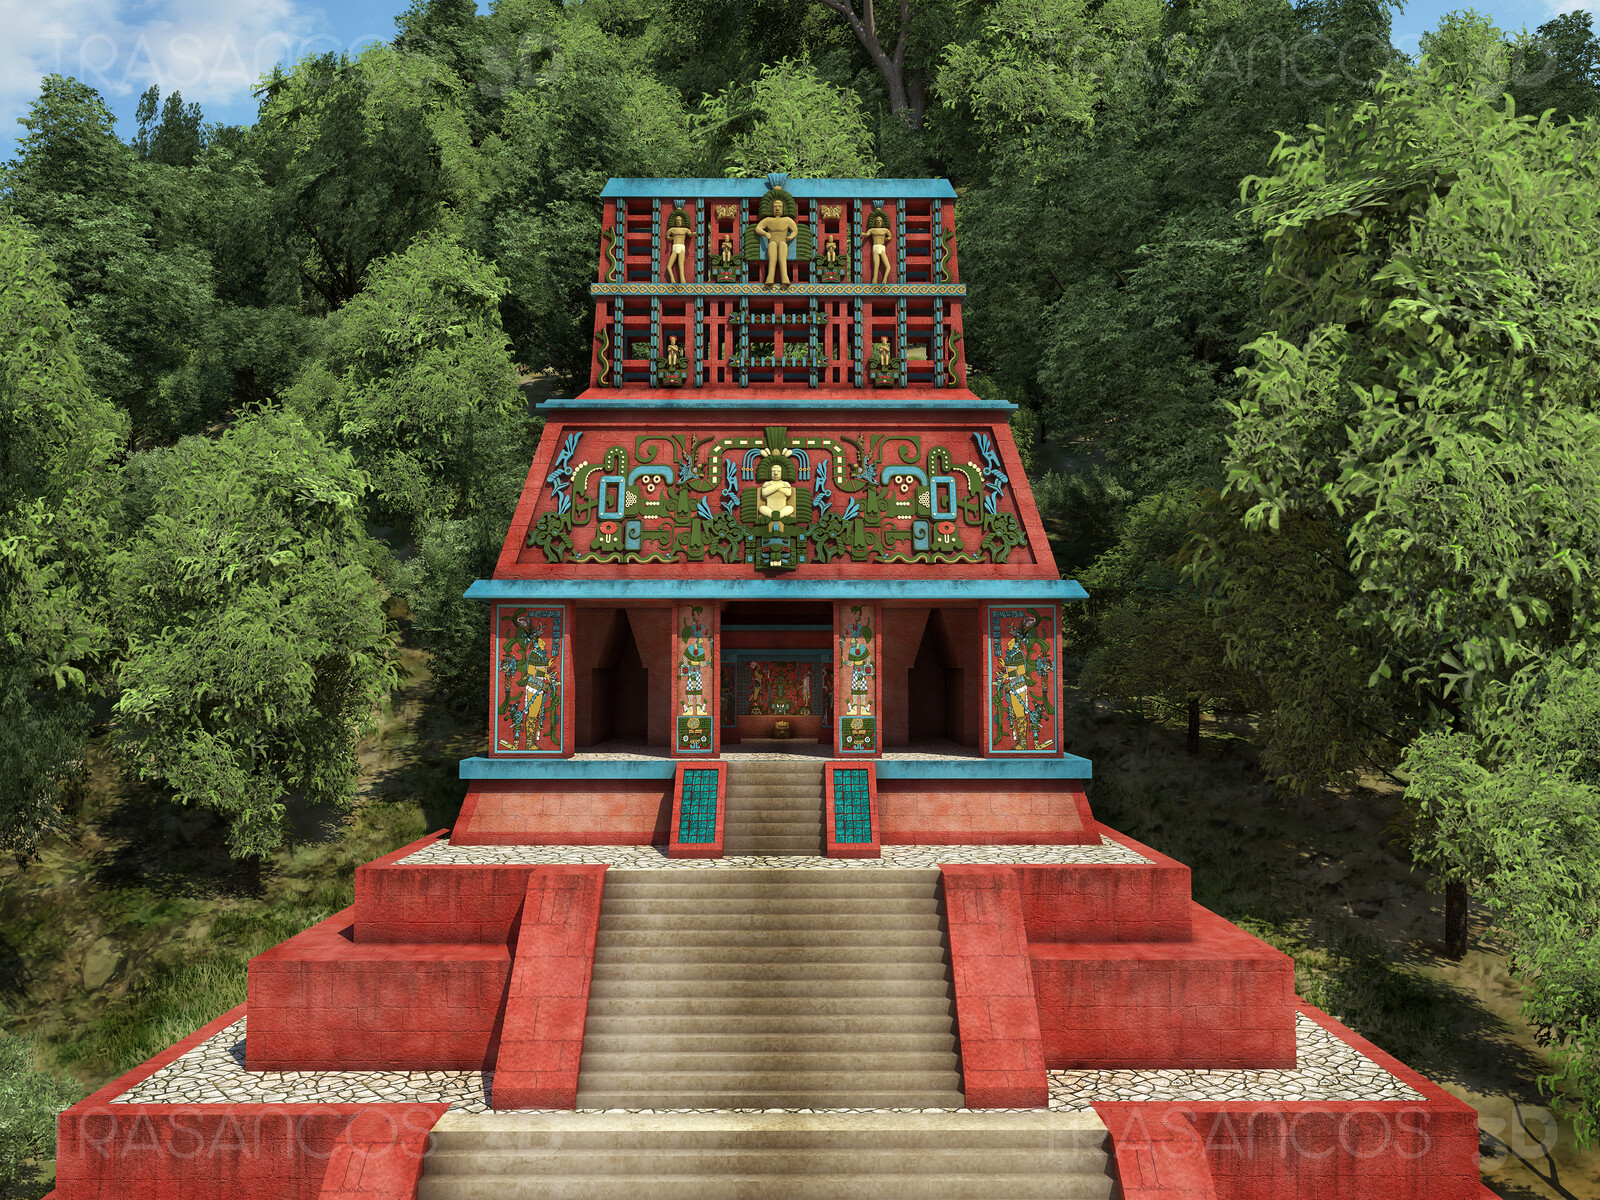 Reconstruction fo the Temple of the 'Cruz Foliada' (Foliated Cross) Modeled in collaboration with: - Andrés Armesto